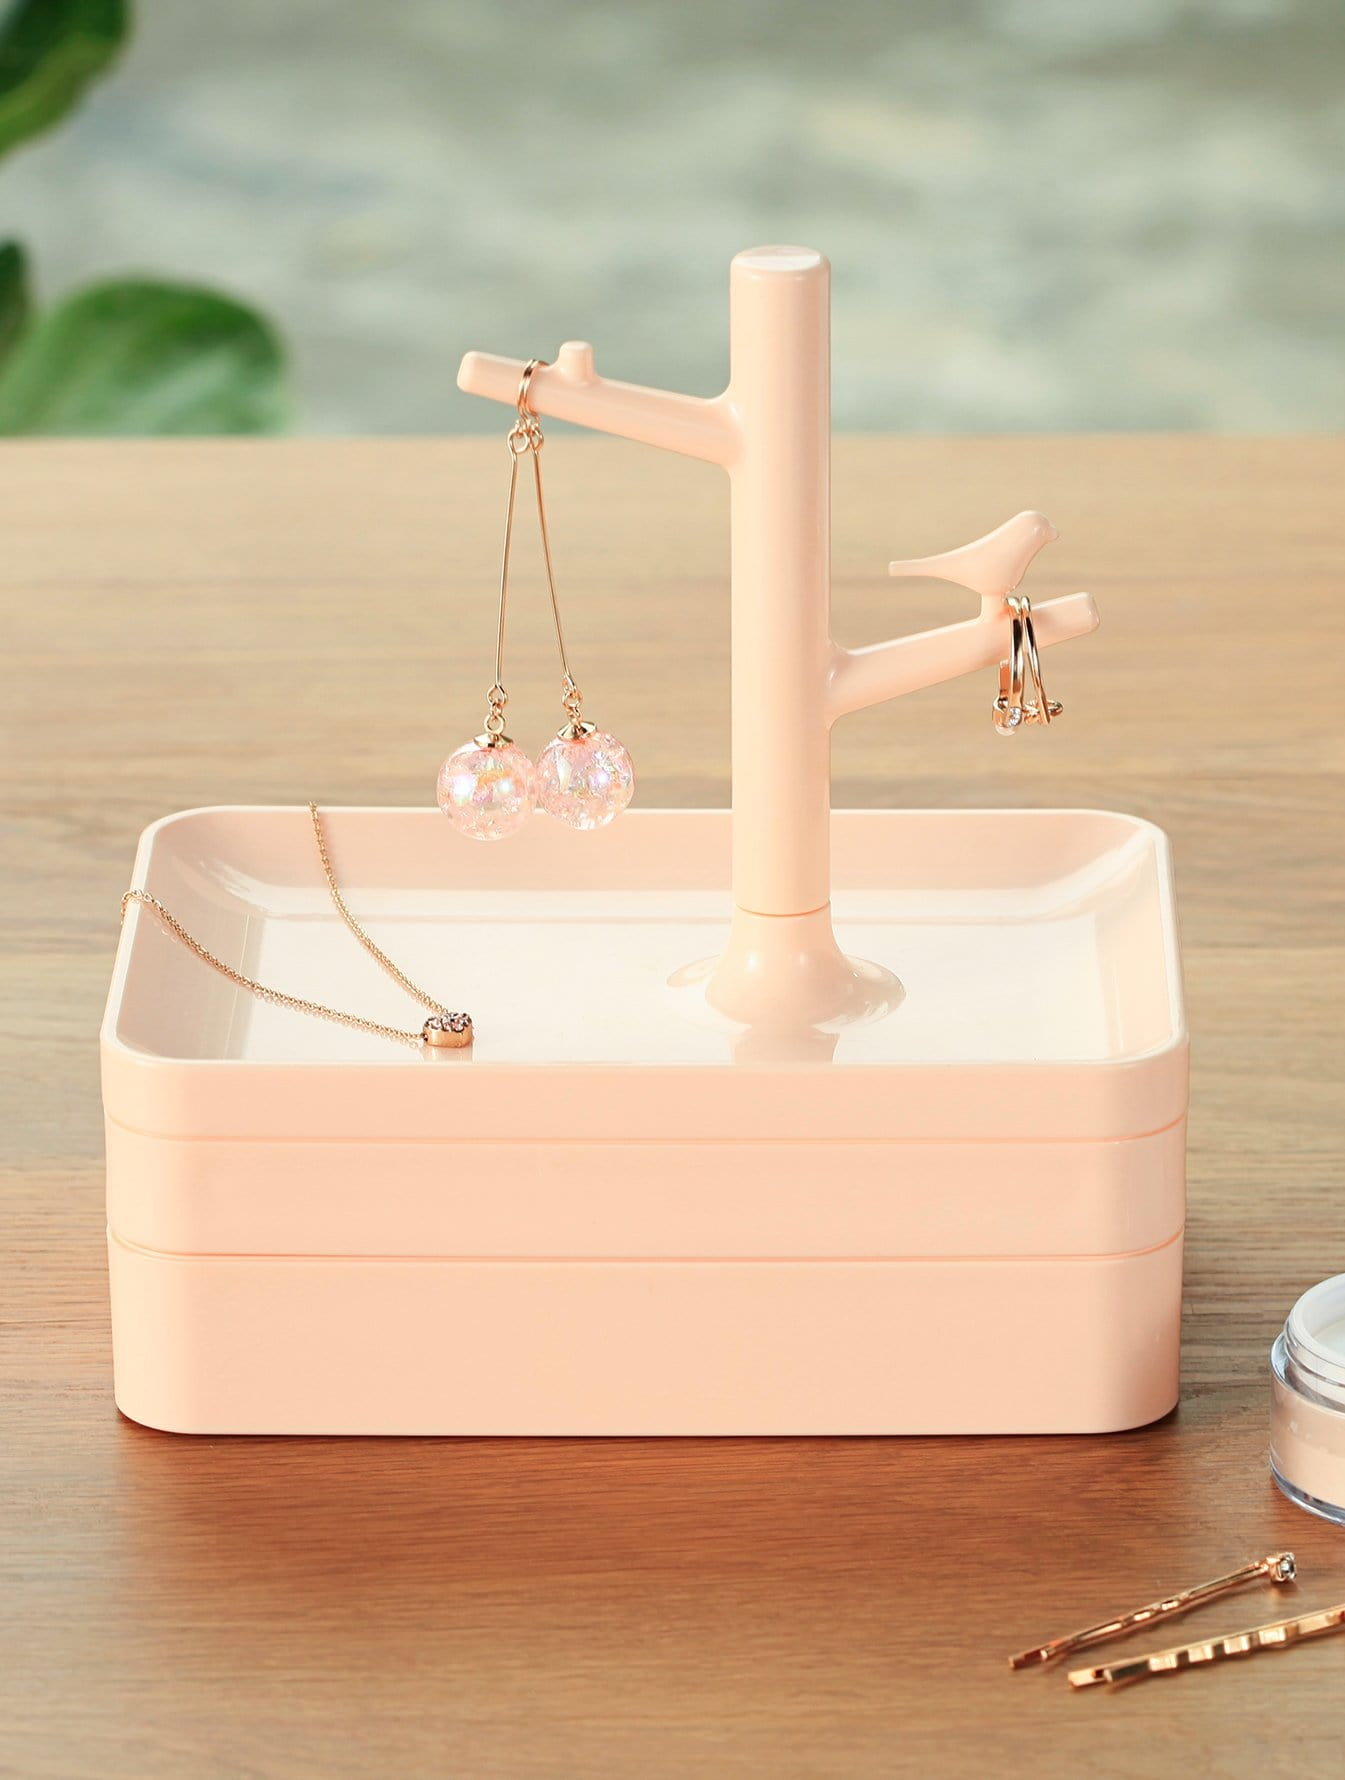 3 Layered Jewelry Storage Box With Branch 3 drawer stylish craft paper storage box with 3 inside pockets for office file jewelry cd bill photo organizing desk set